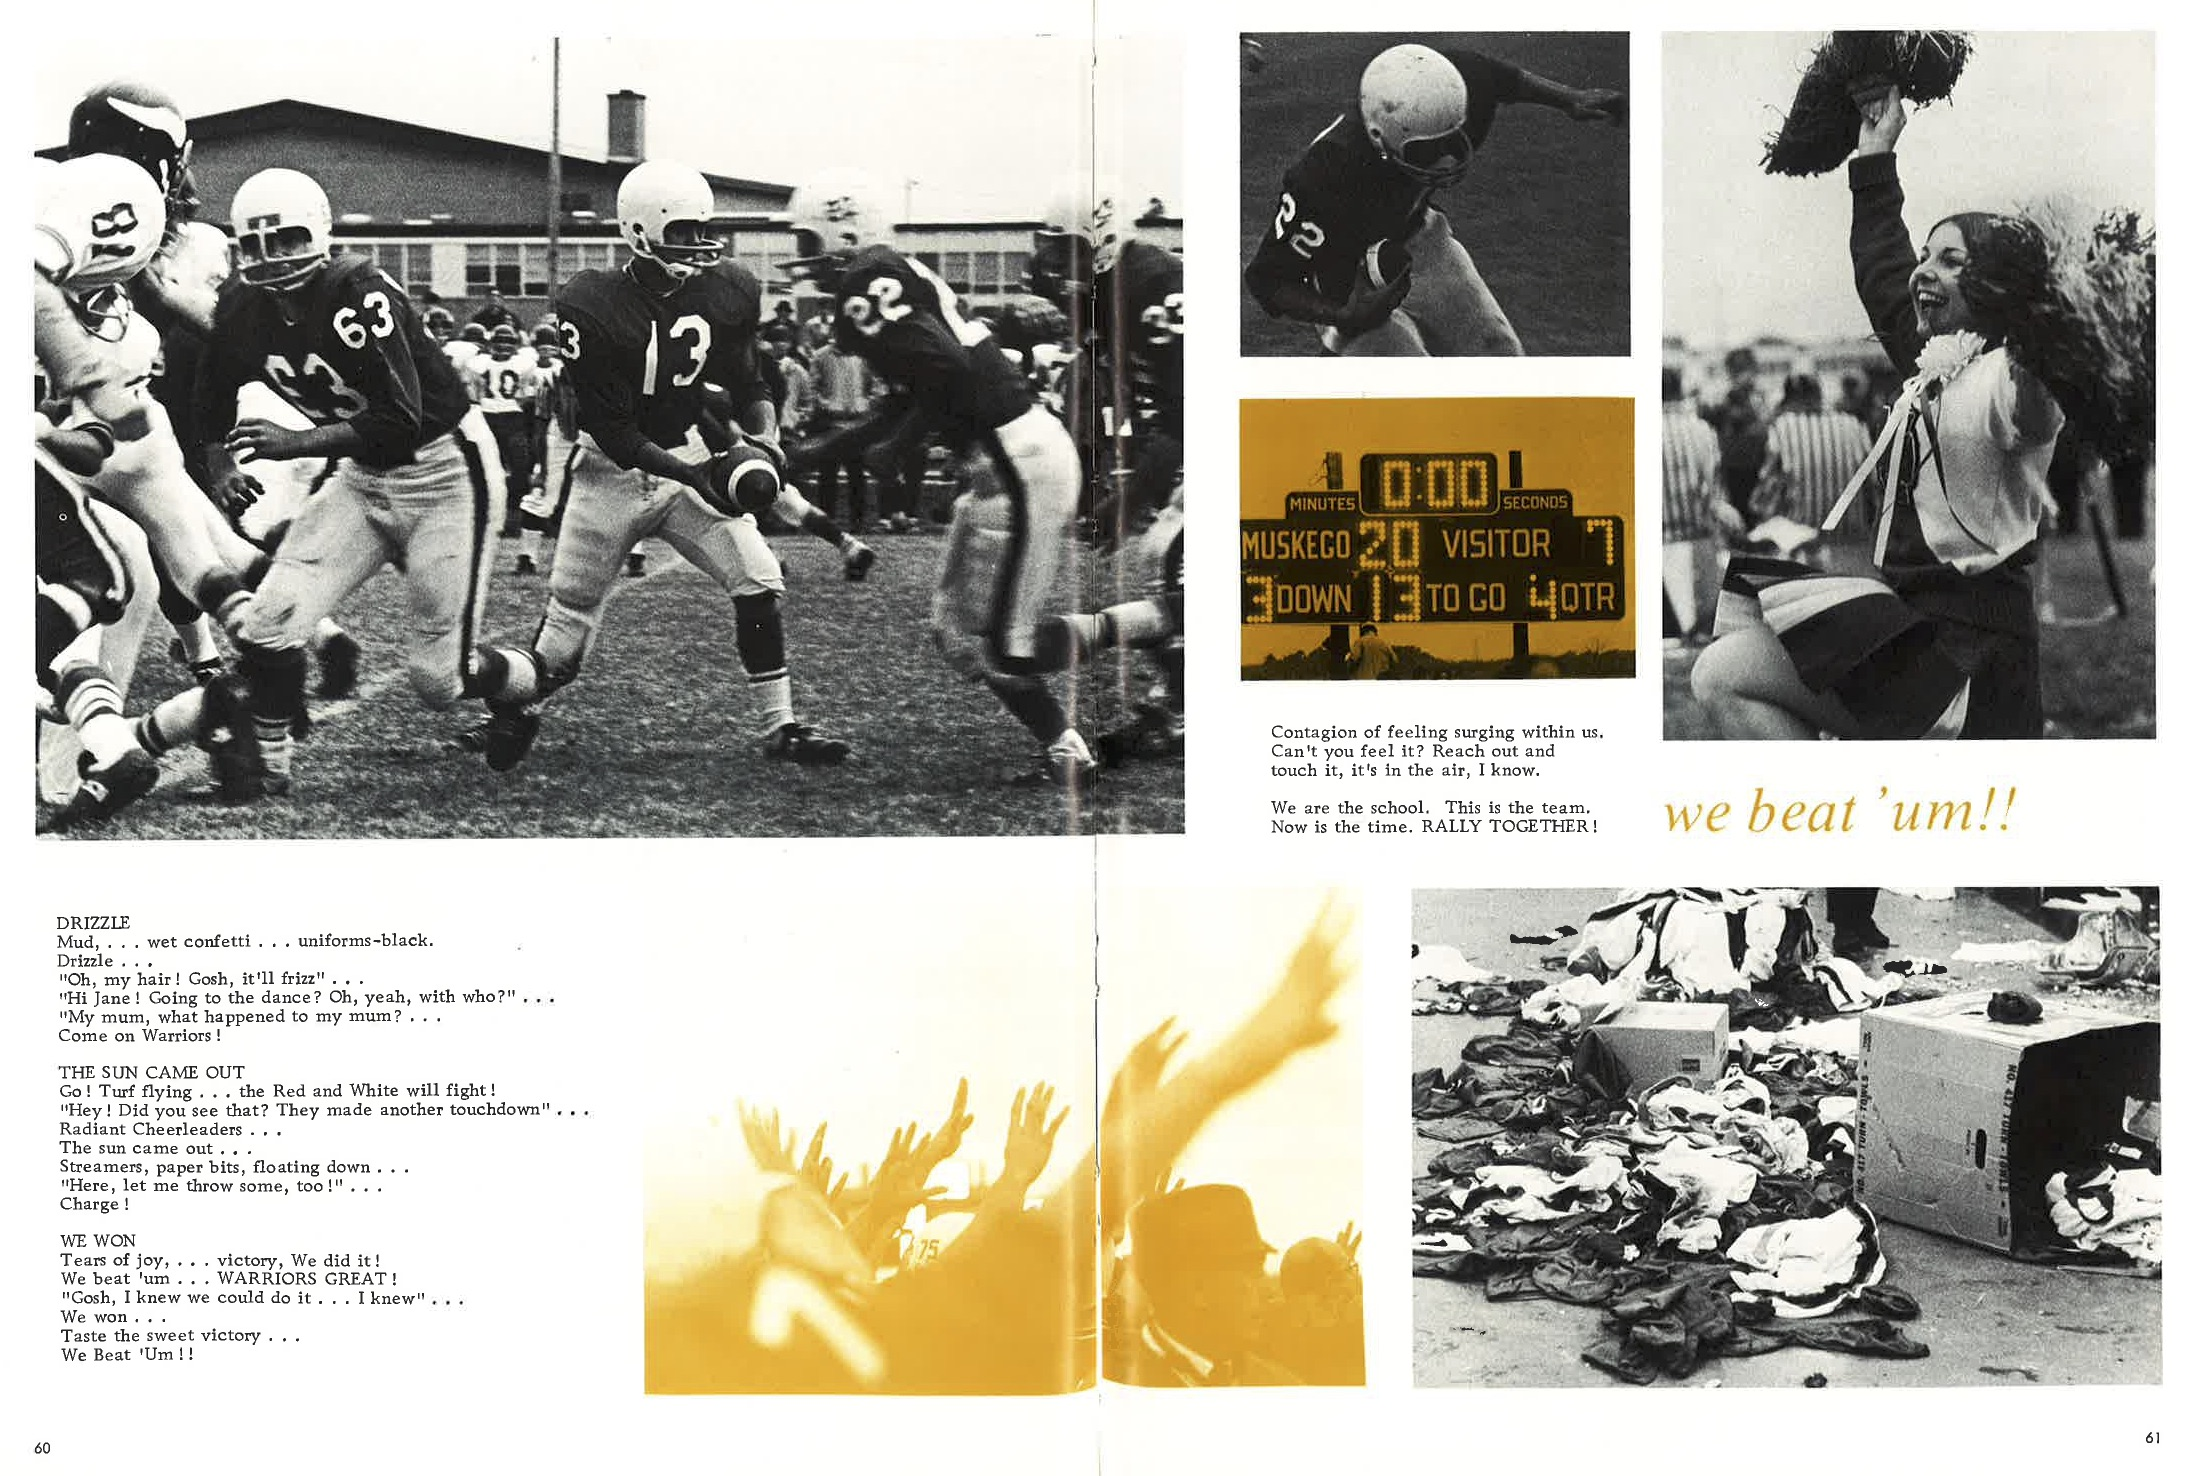 1970_Yearbook_60-61.jpg